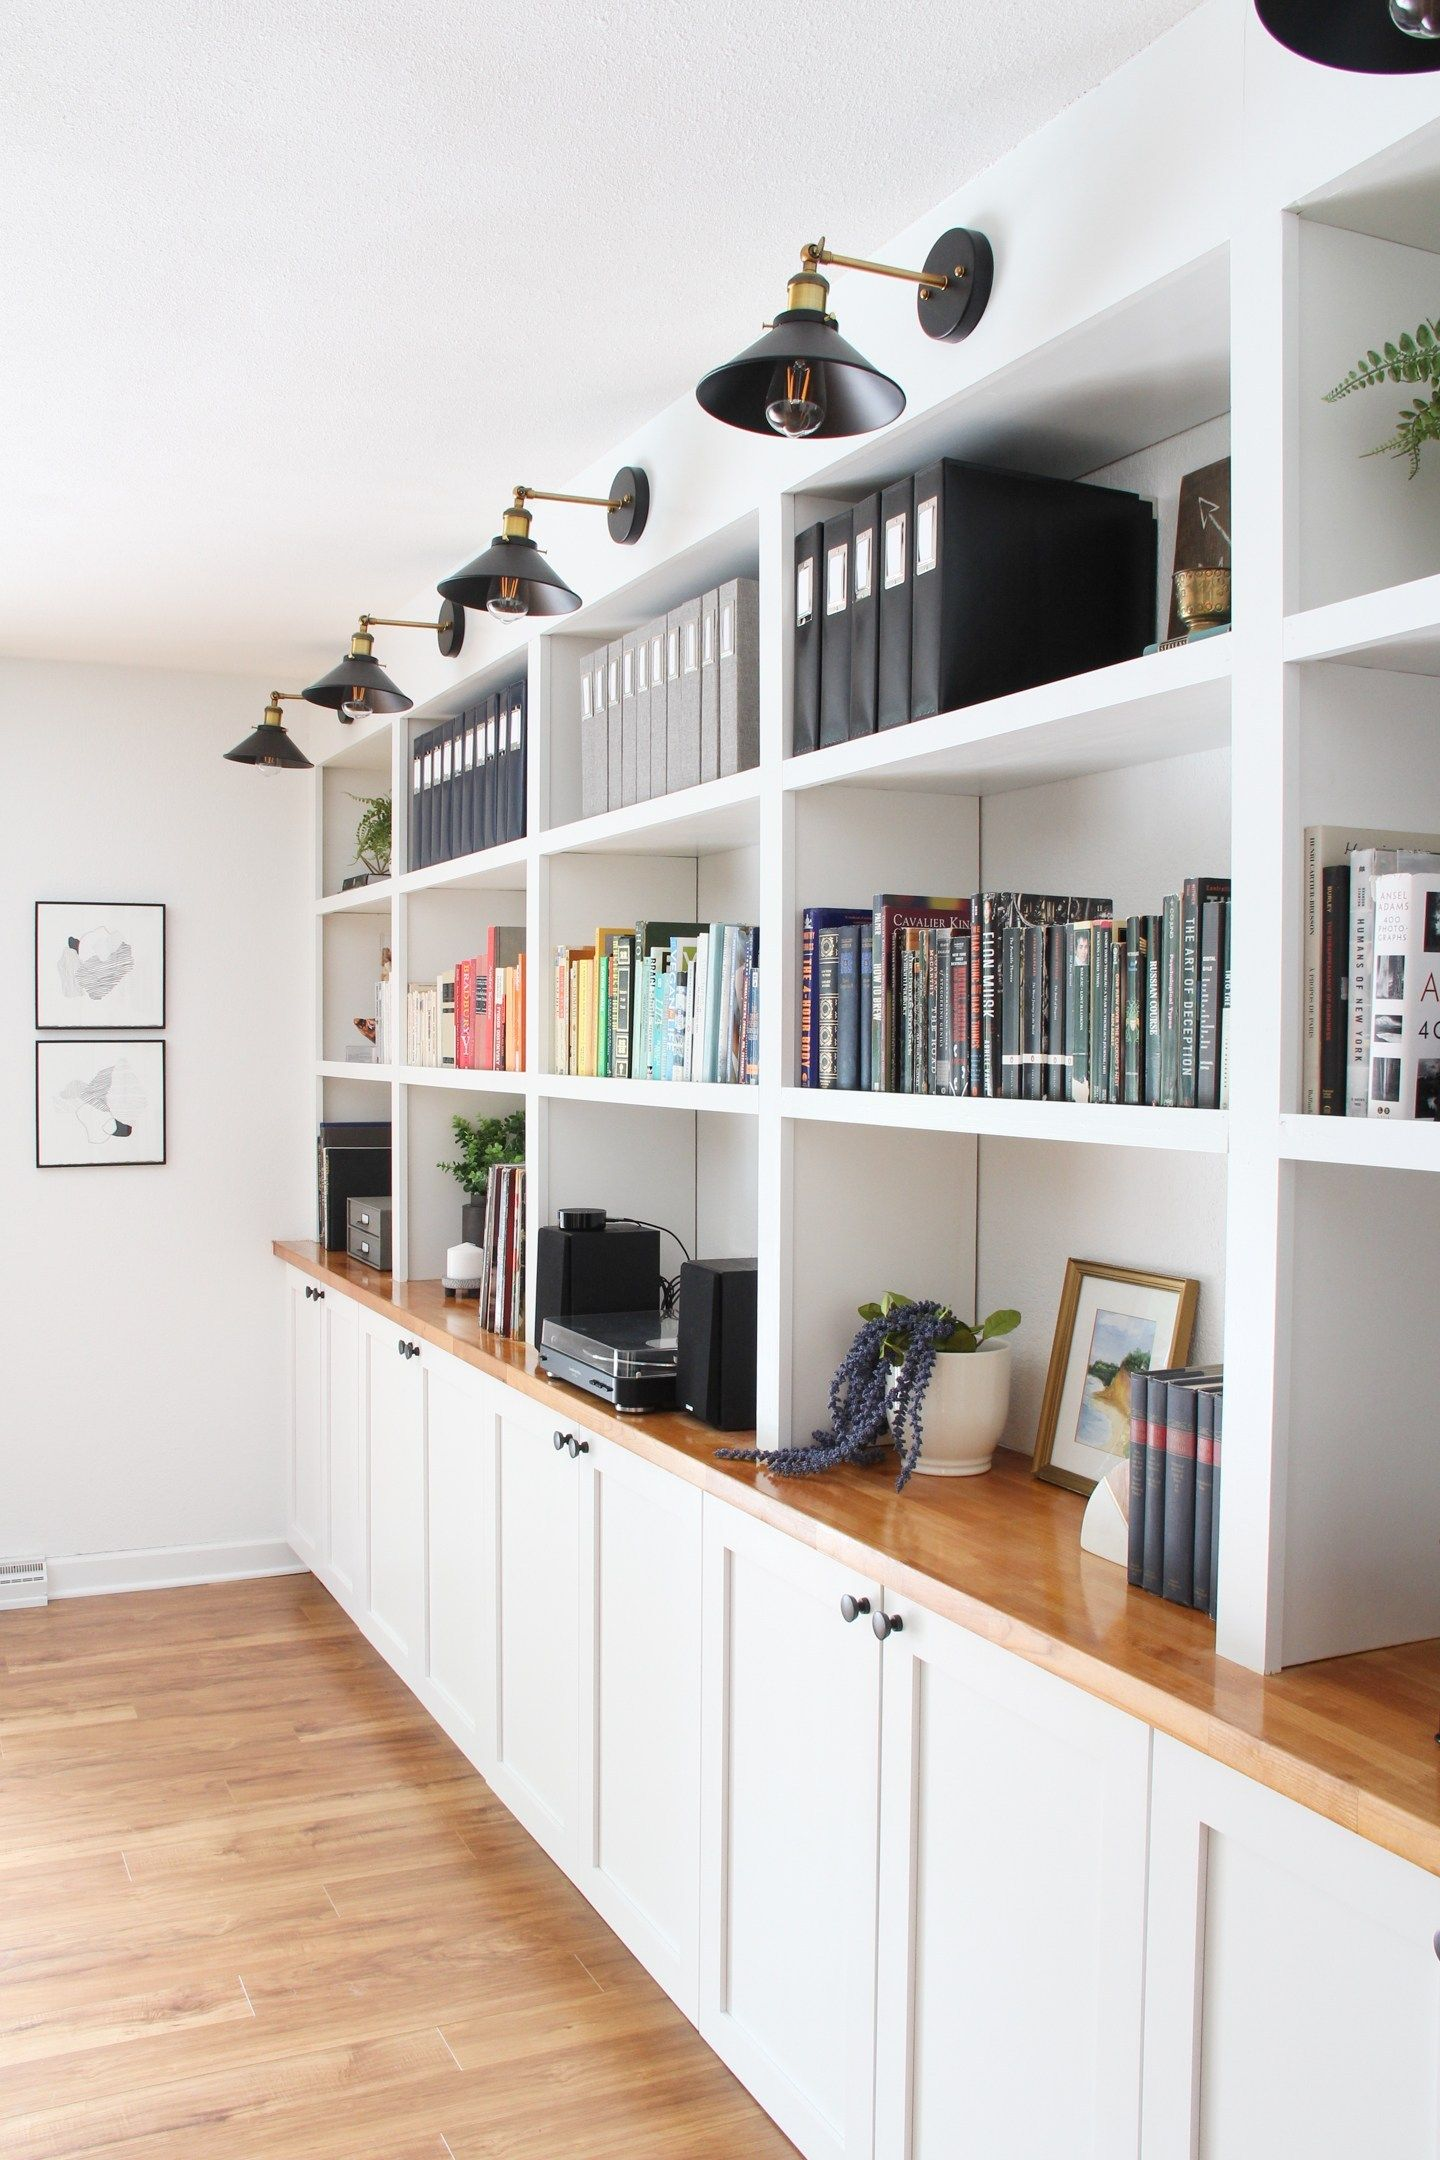 Photo of IKEA Built-in Hacks That Will Save You Money